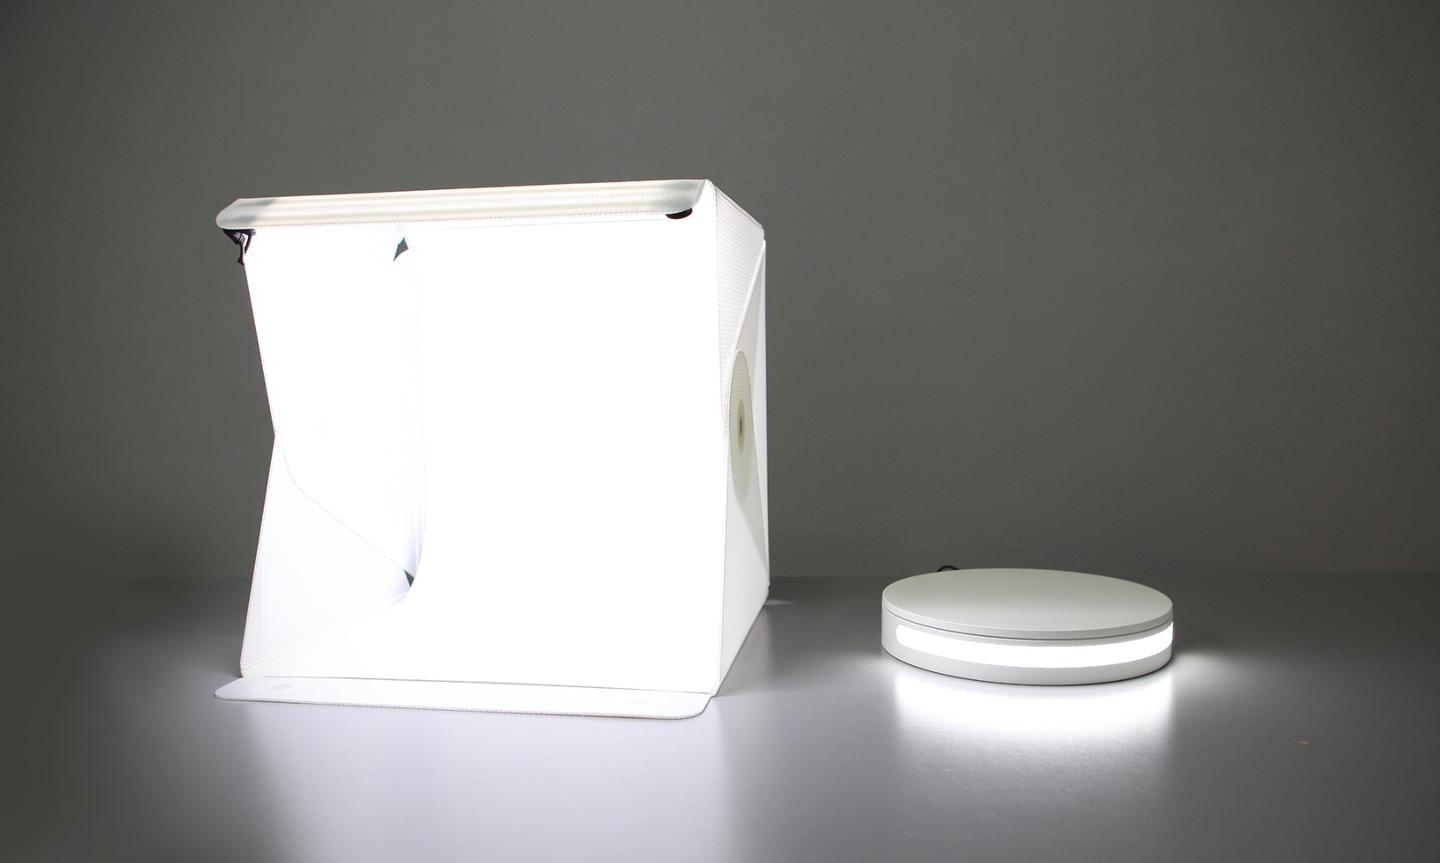 The Foldio360 smart photography turntable is best used with a light box like the Foldio lightbox studio